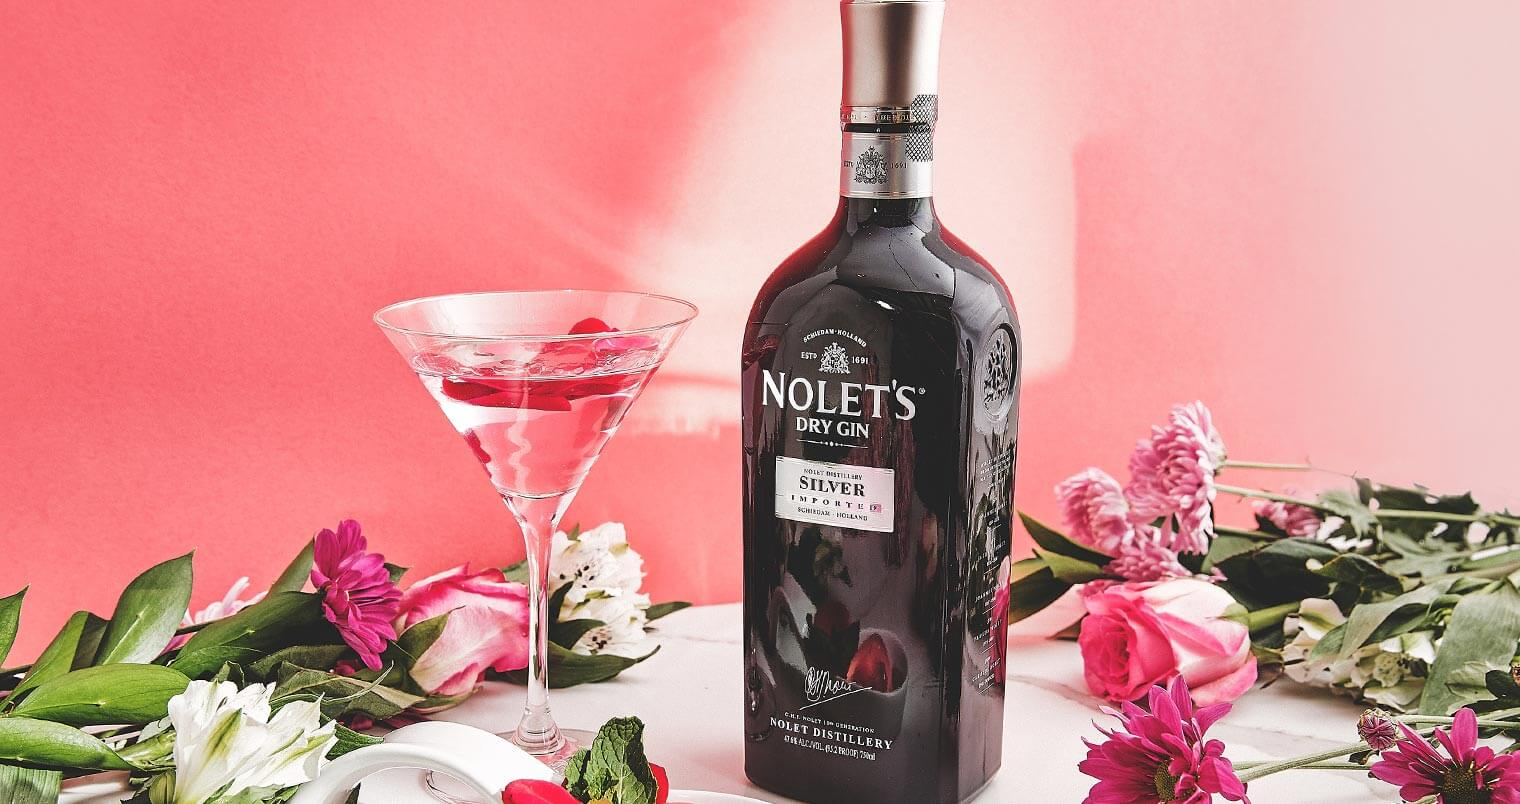 Rose Gimlet Raindrop Cake, martini and bottle with garnishes on table, pink lighting, featured image